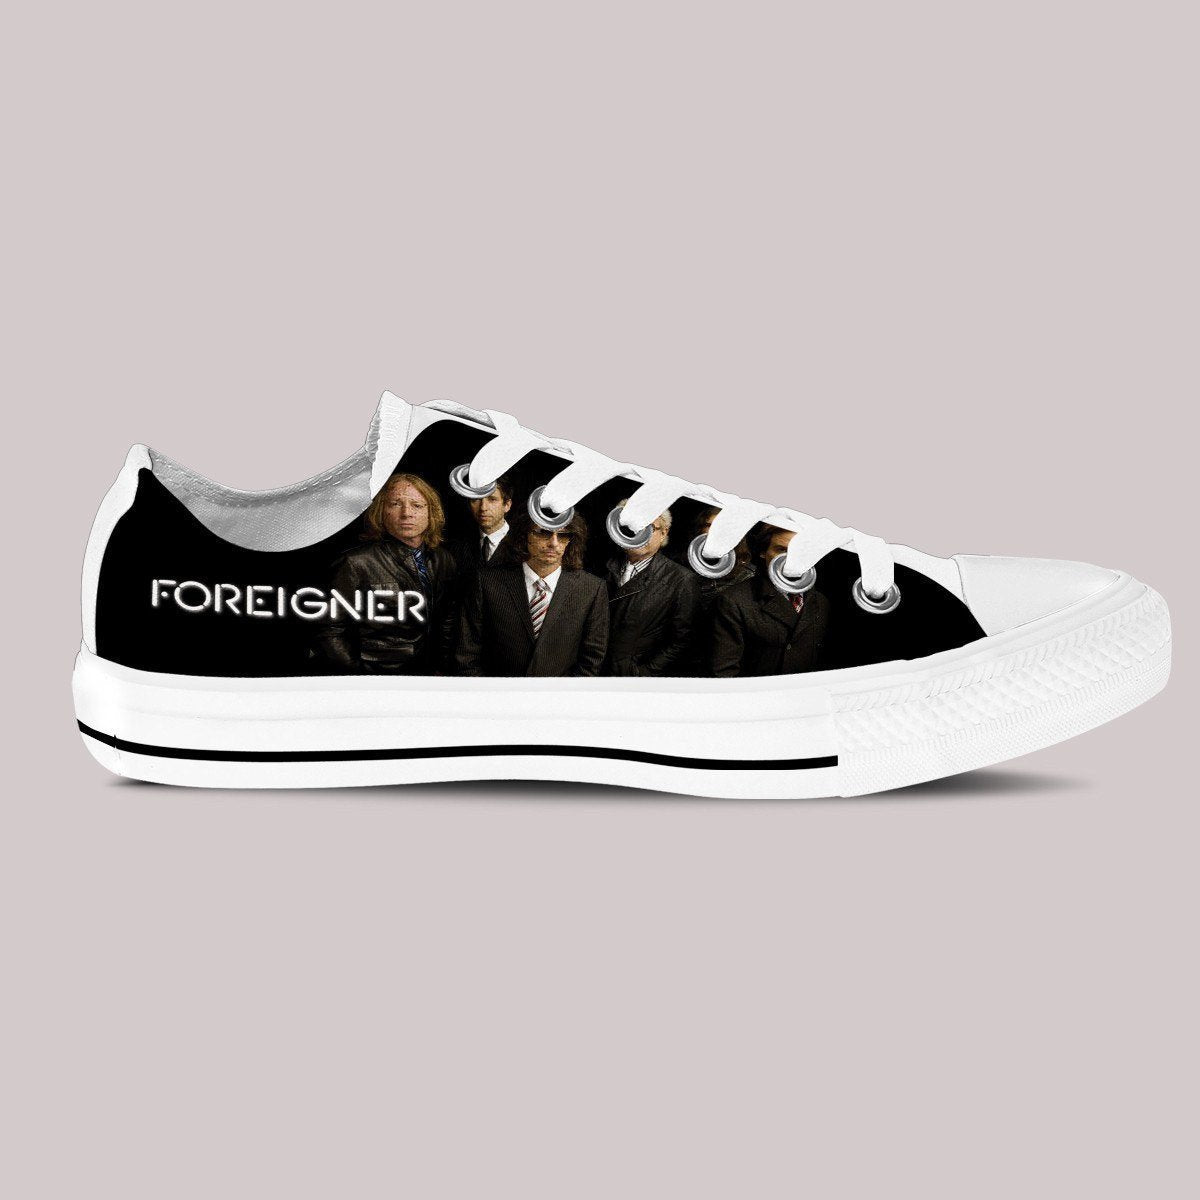 foreigner mens low cut sneakers